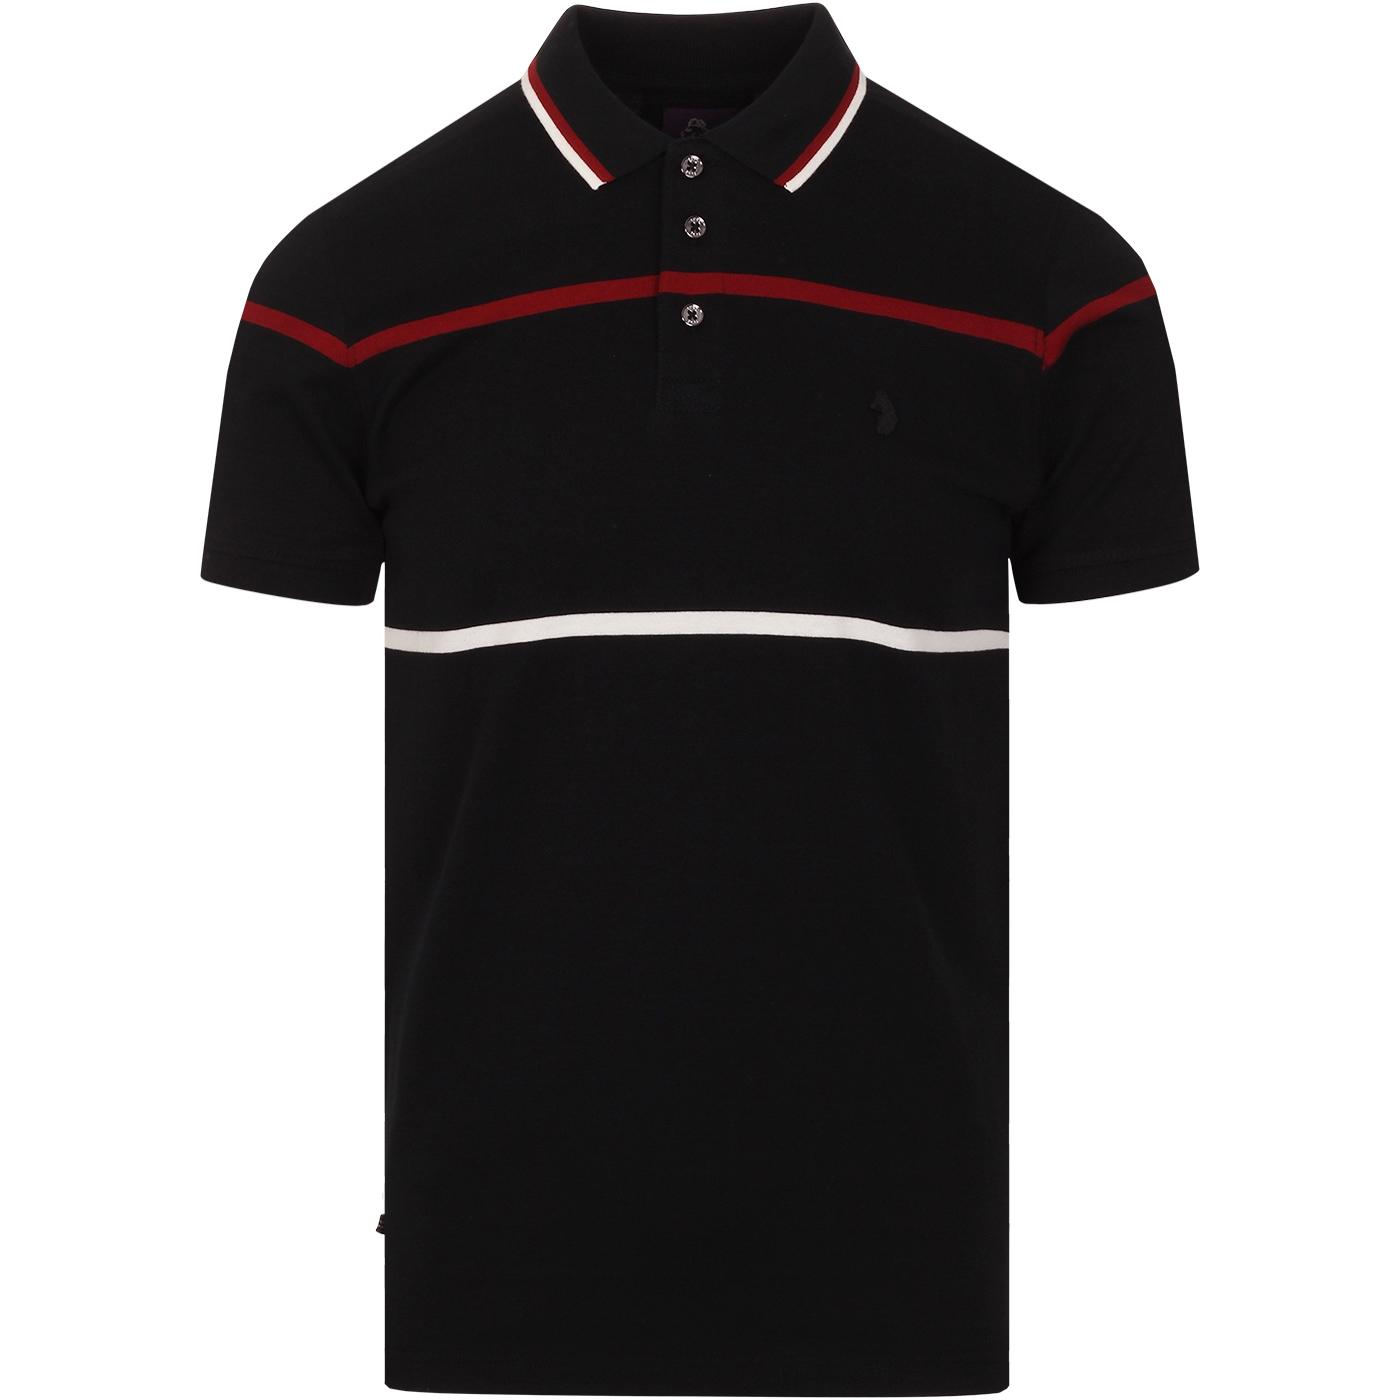 O'Brien LUKE Retro Mod Yarn Dyed Stripe Polo Top